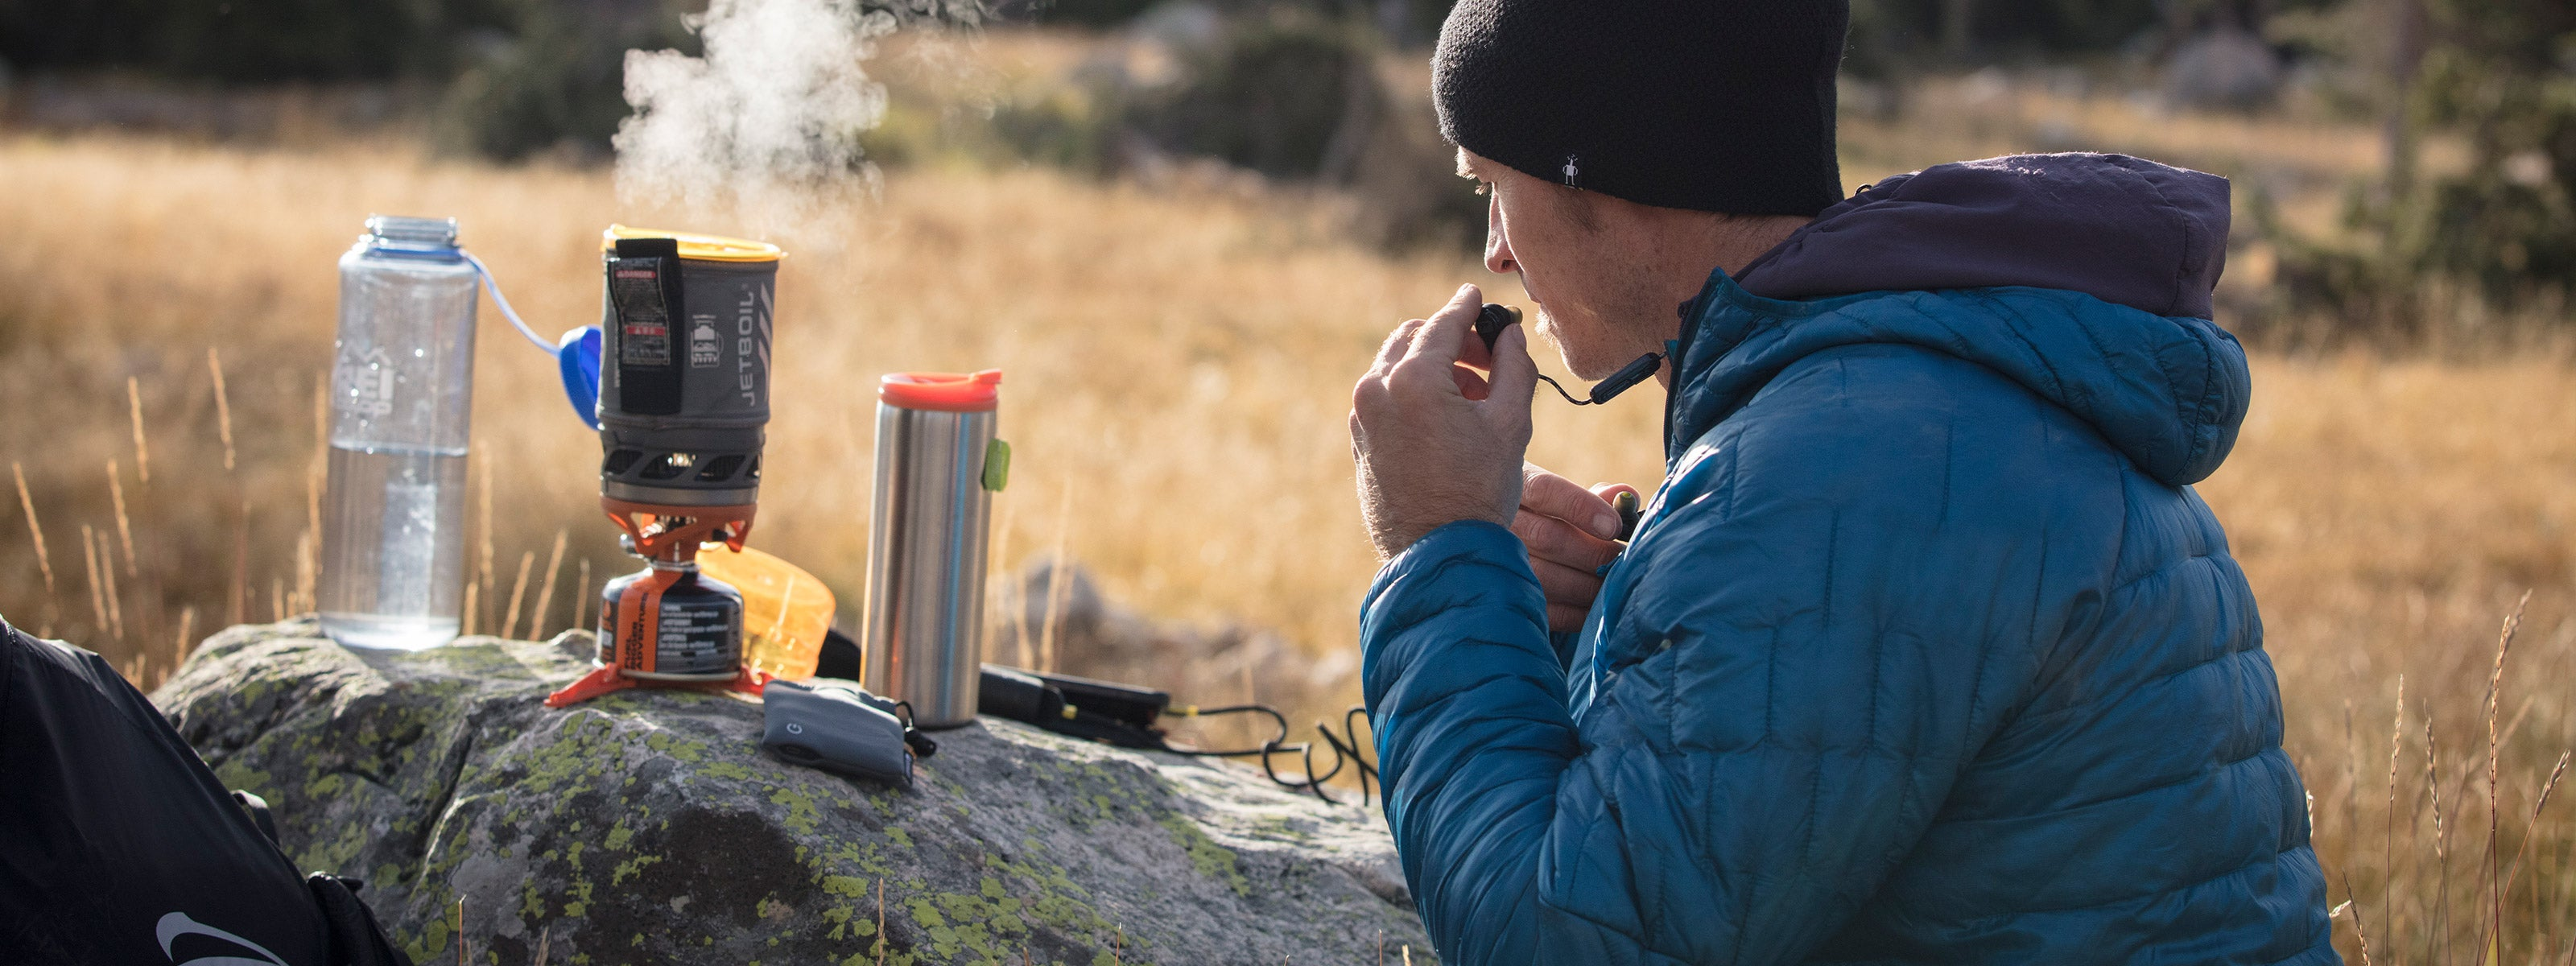 Man camping and listening to earbuds